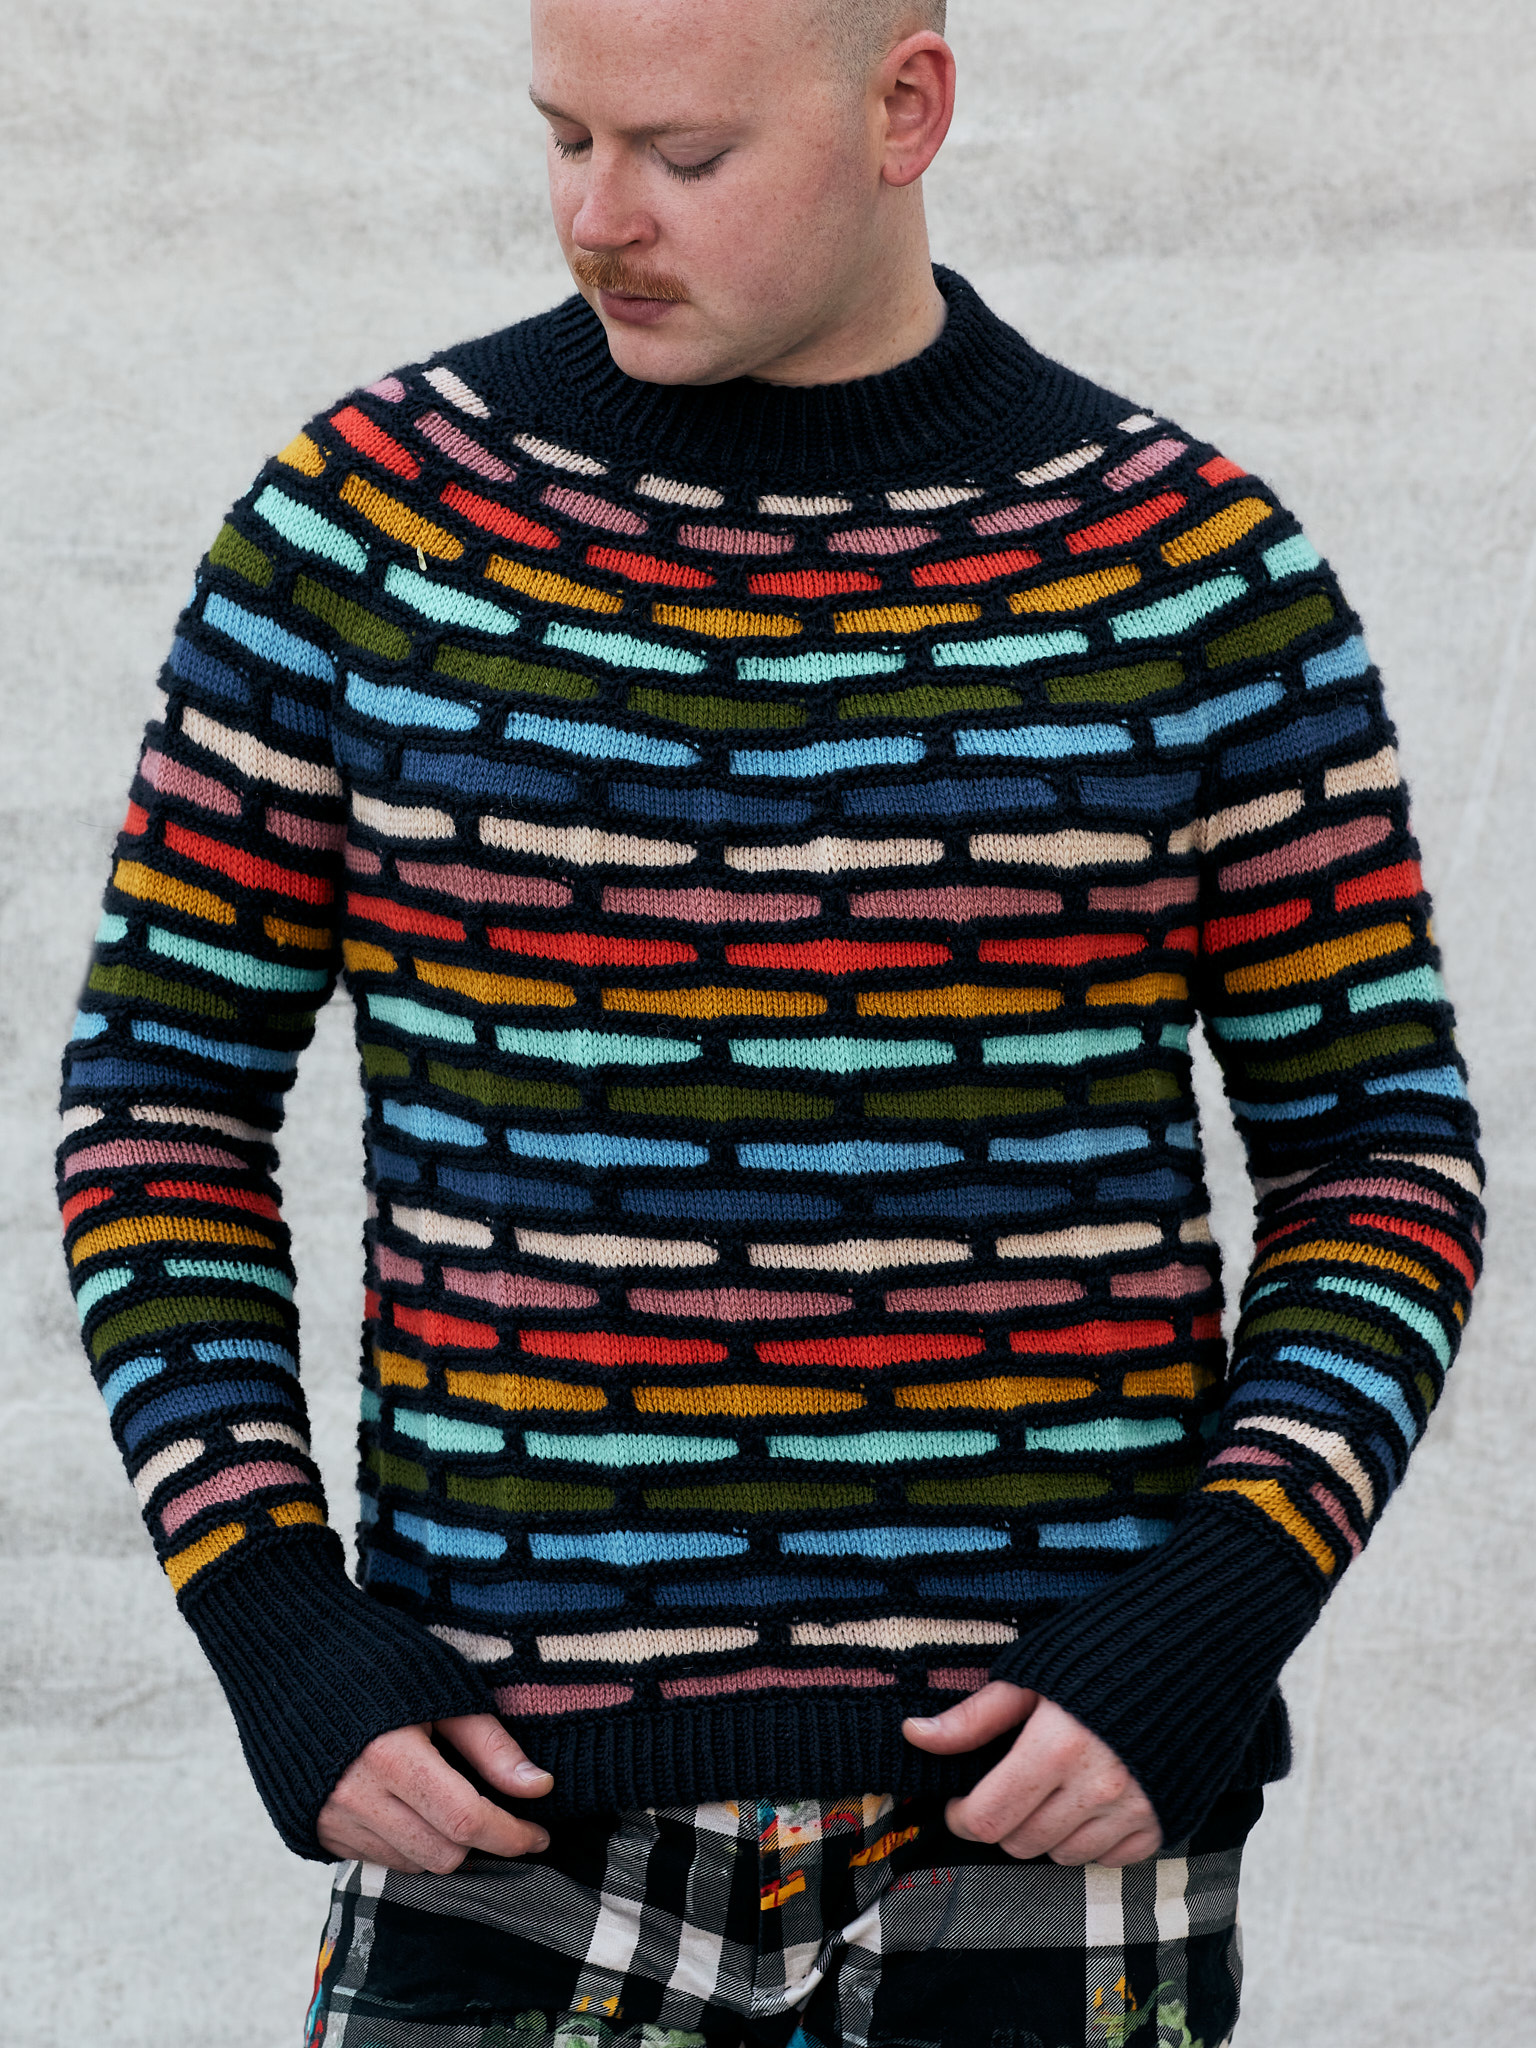 Westknits WK PAINTING BRICKS SWEATER CONTRAST COLOUR - KIT 6